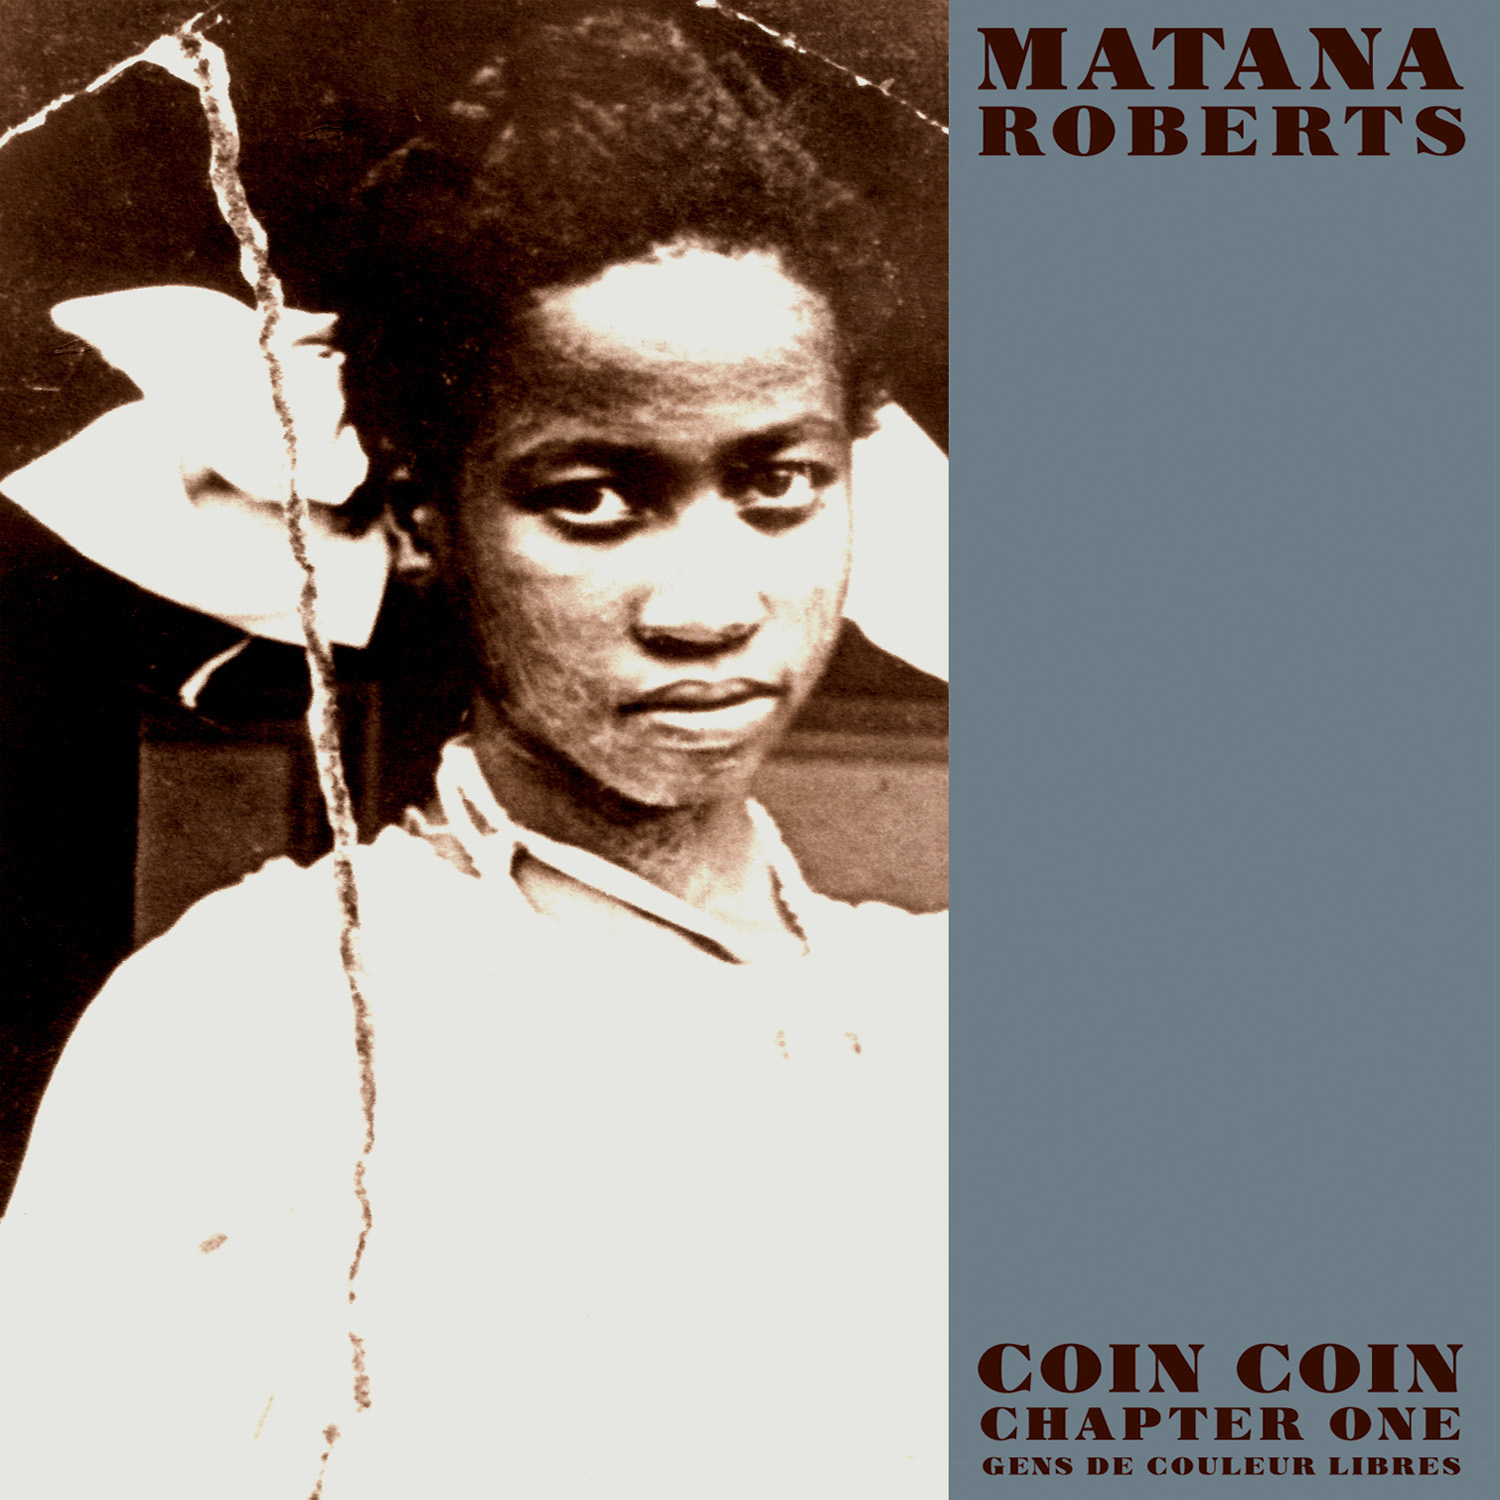 Matana Roberts, COIN COIN (Constellation)